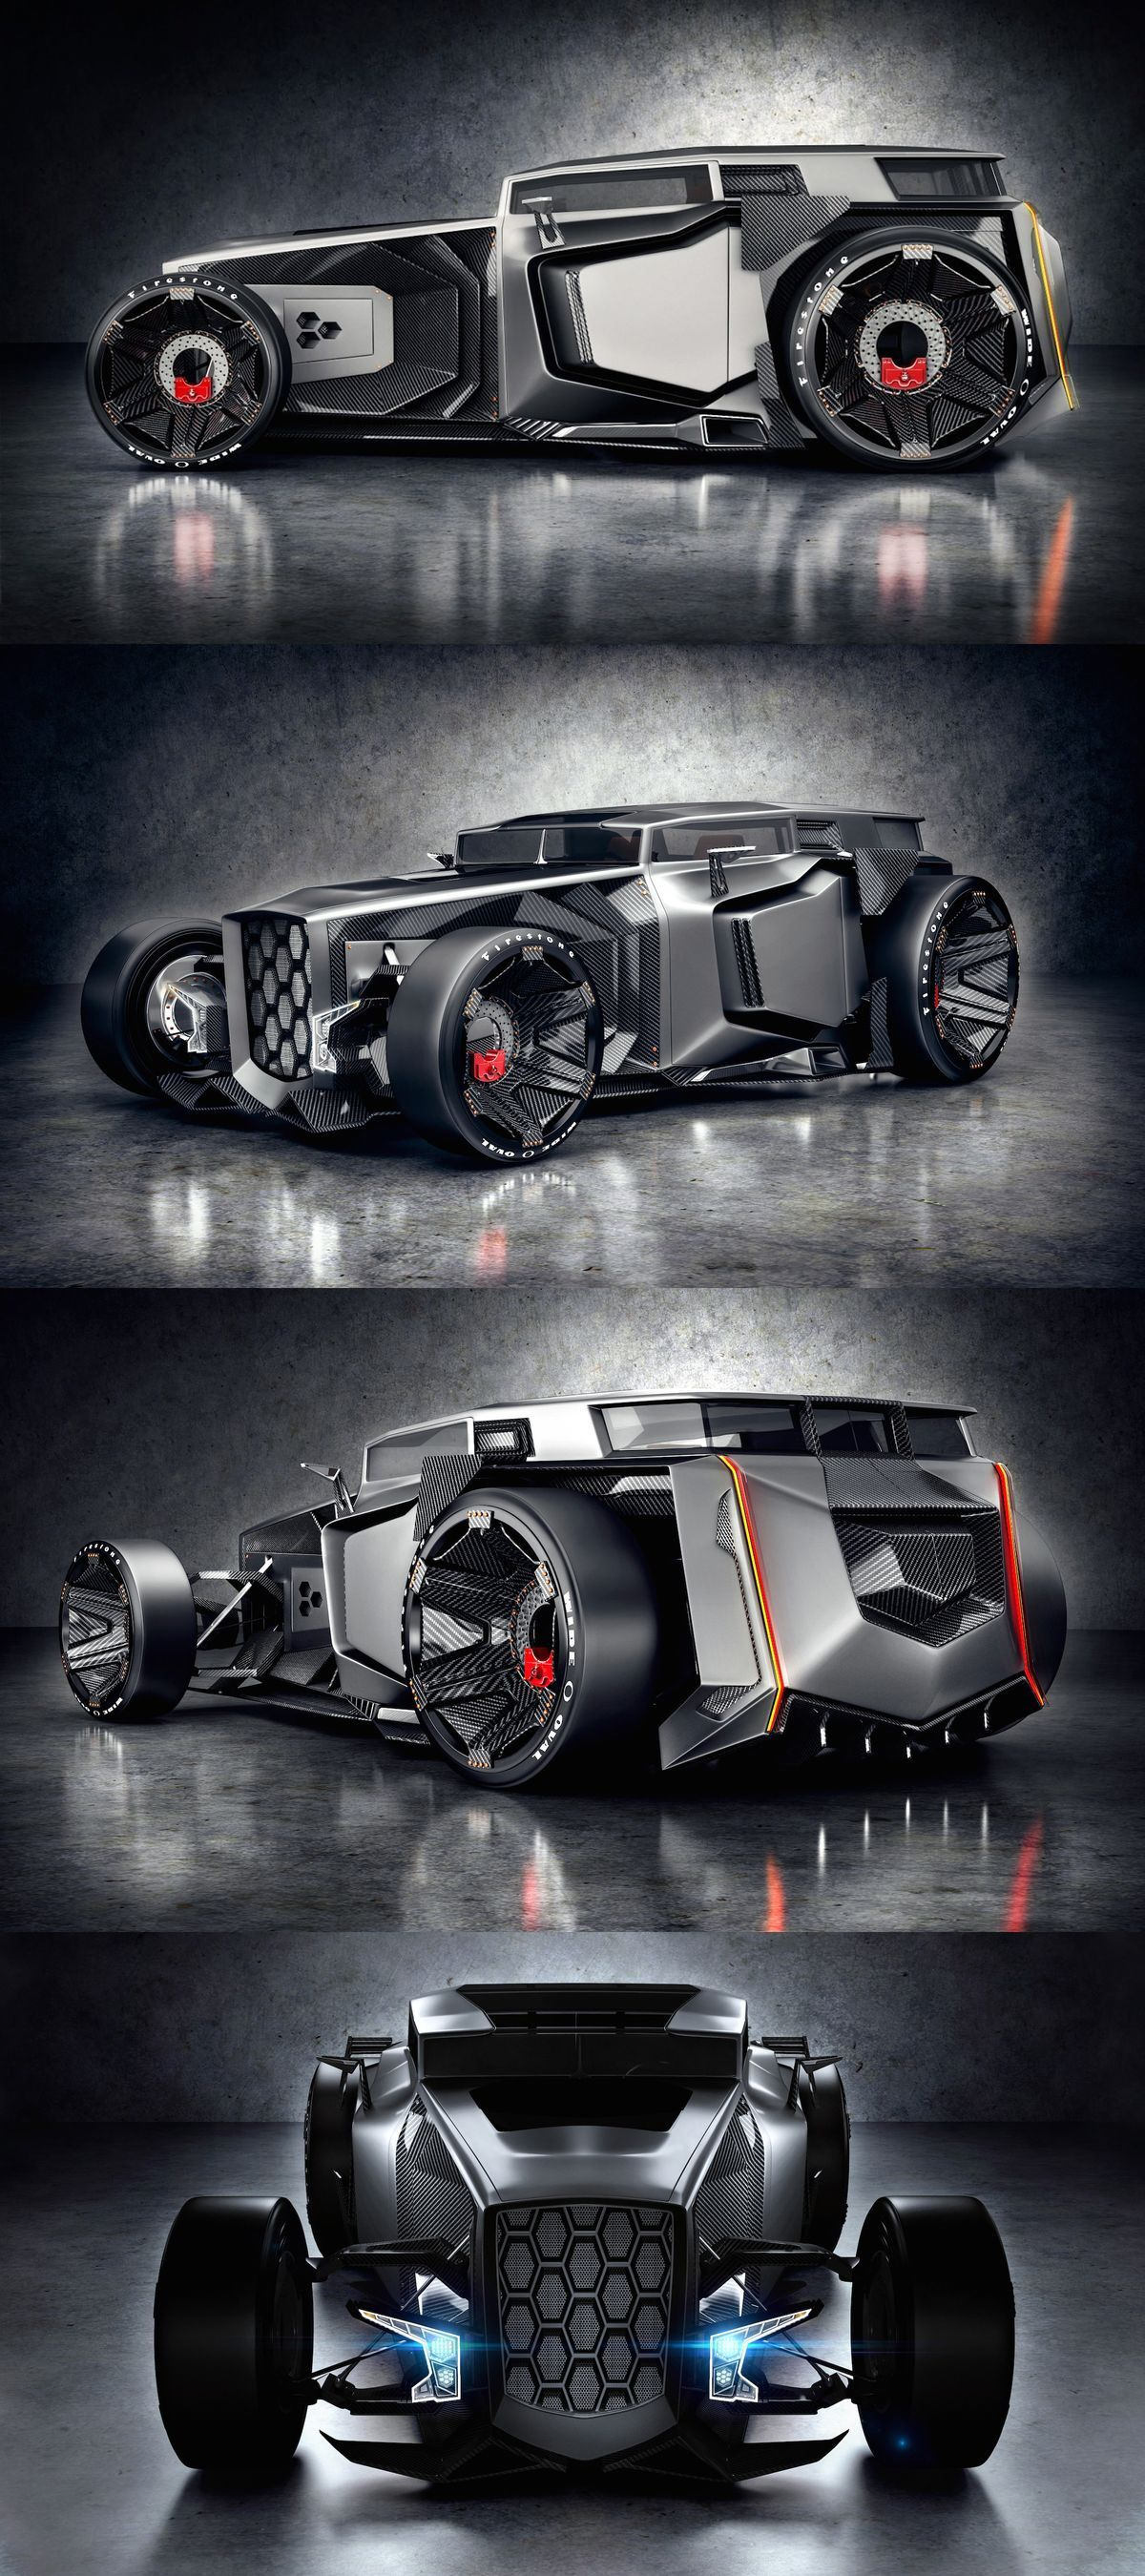 lamborghini rat rod tech lamborghini cars concept art pinterest konzept und automobil. Black Bedroom Furniture Sets. Home Design Ideas